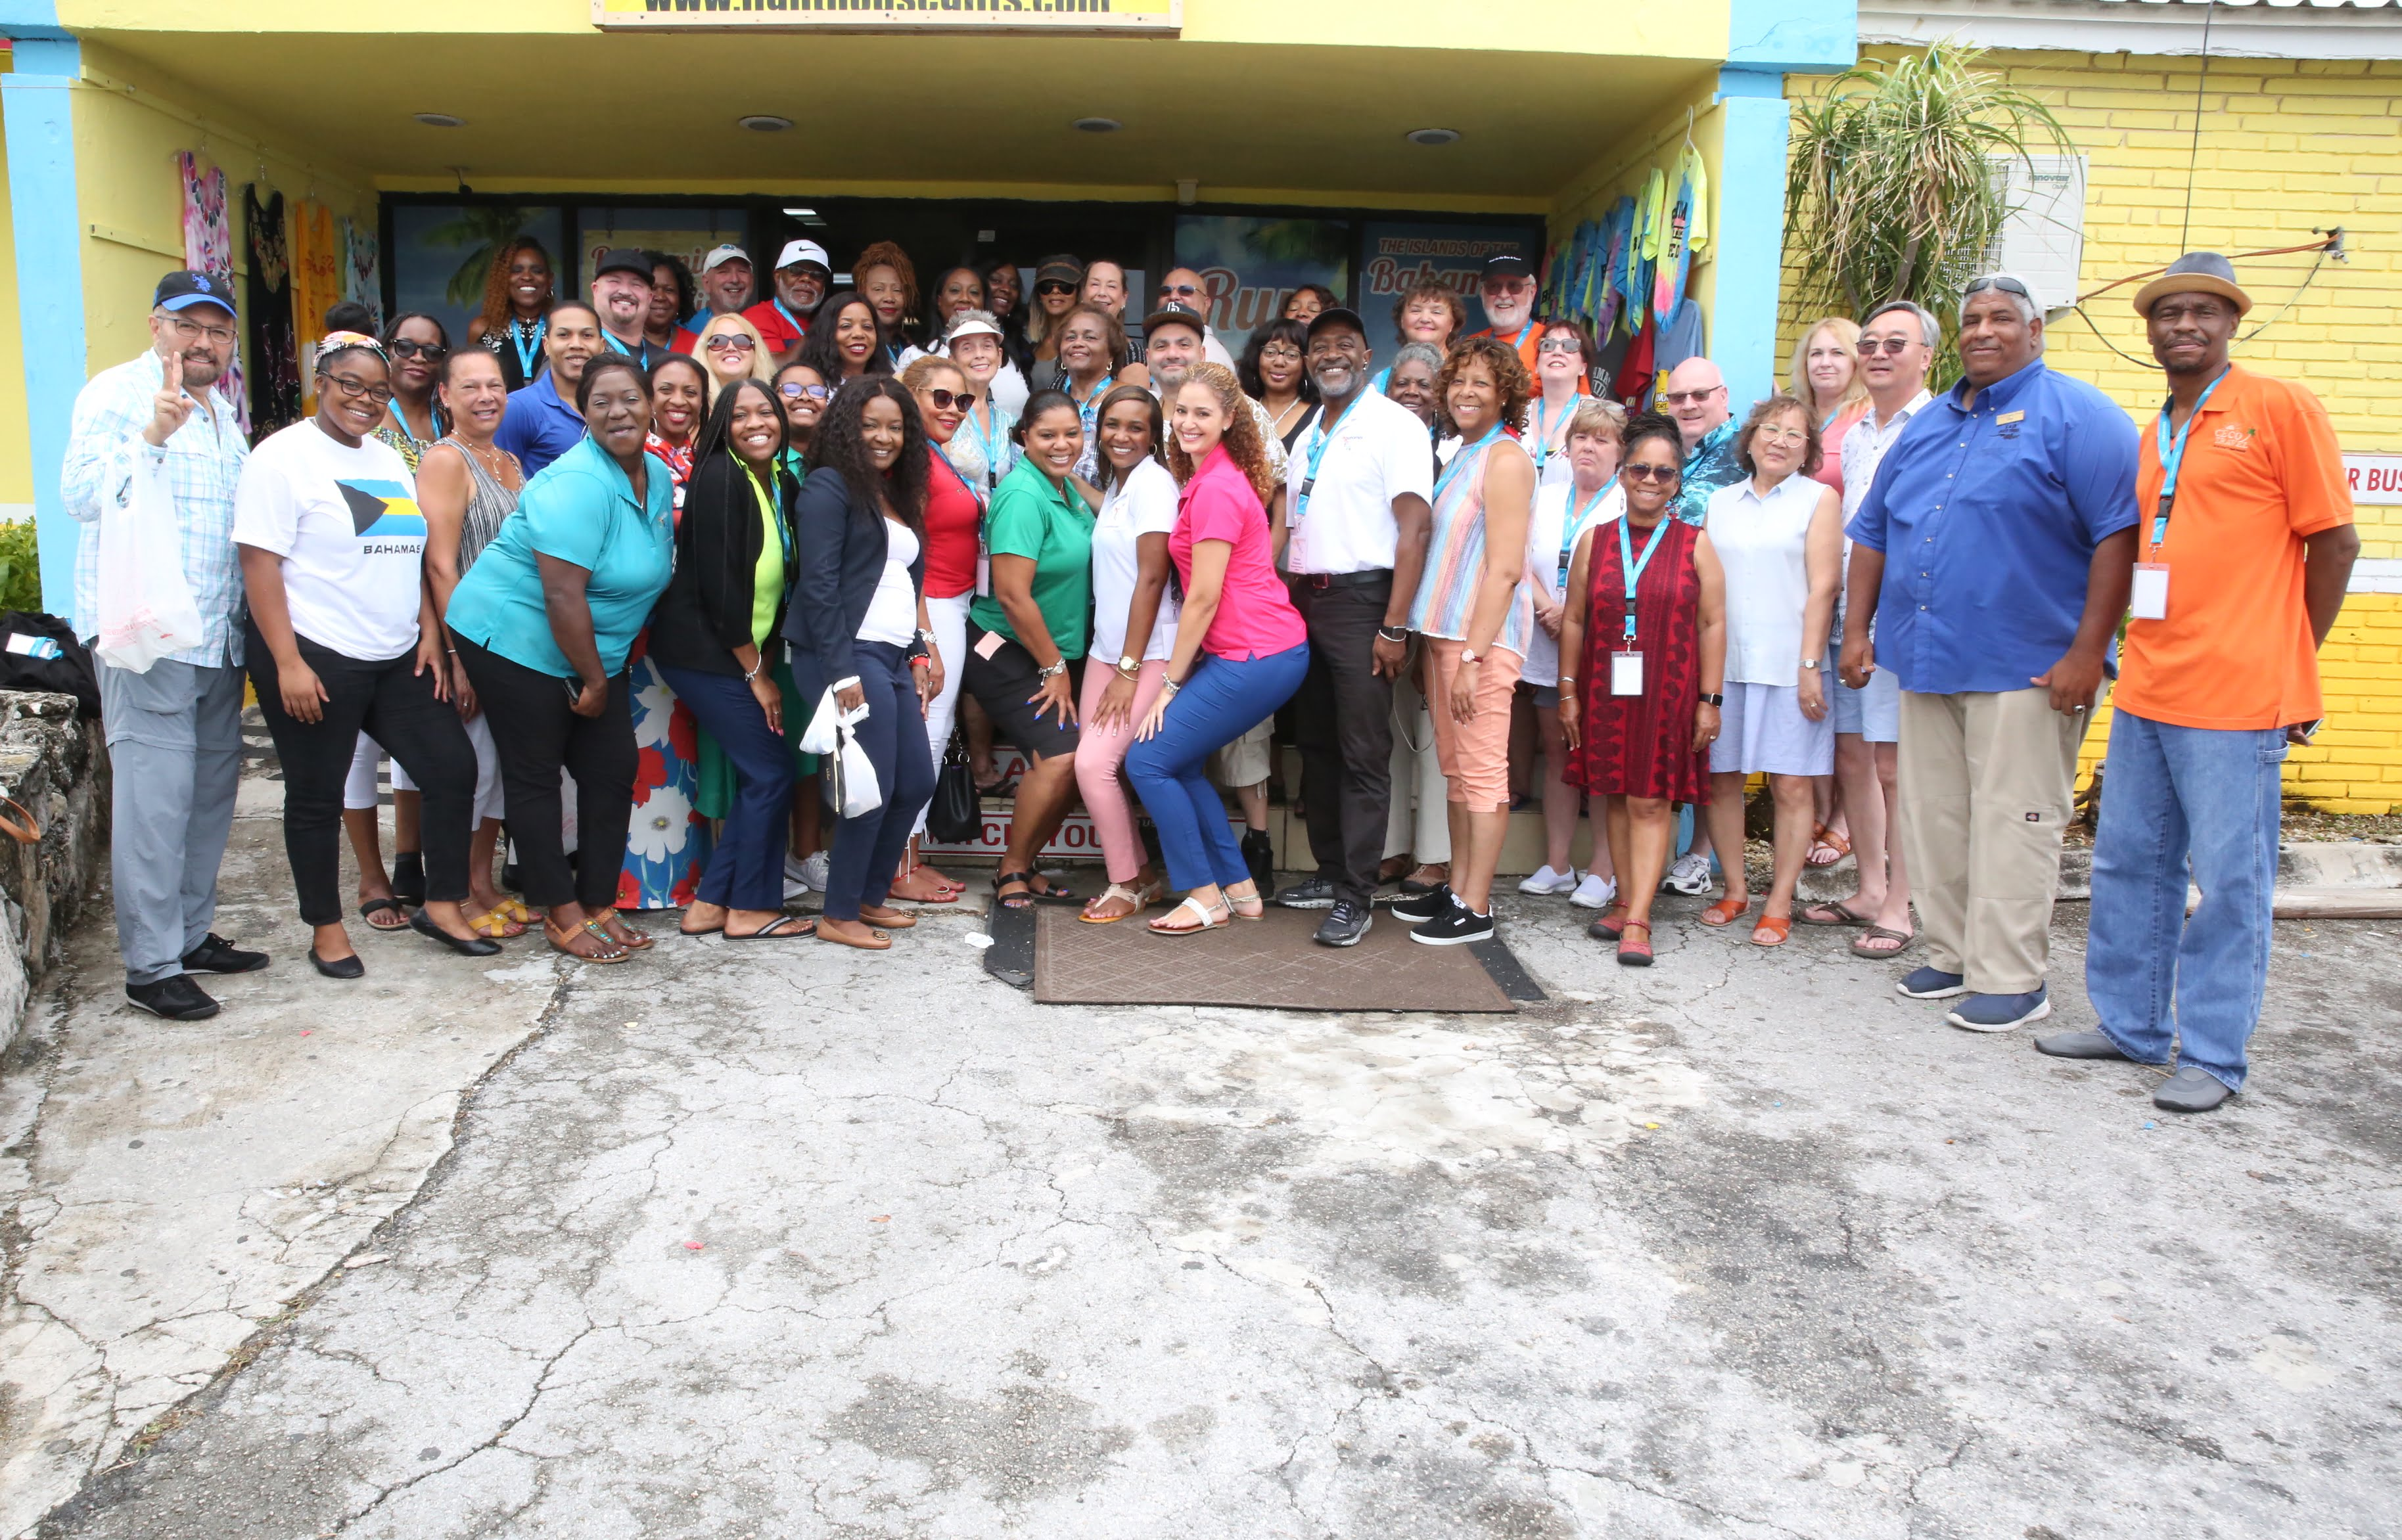 Bahamas Goombay Summer in Freeport  a hit with Florida & Georgia travel agents